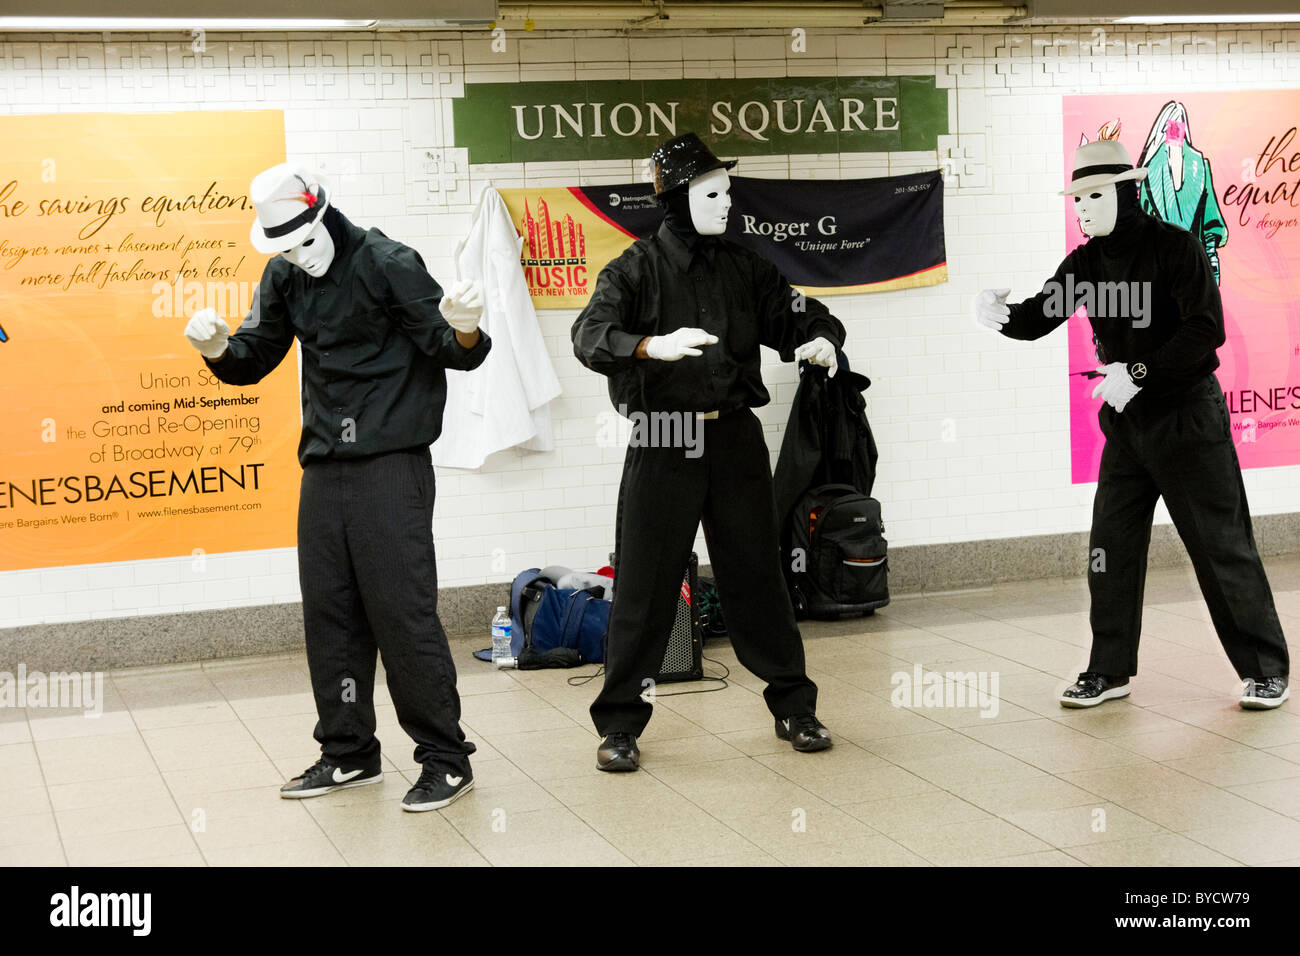 Mime artists performing at Union Square subway station, New York City, America, USA - Stock Image